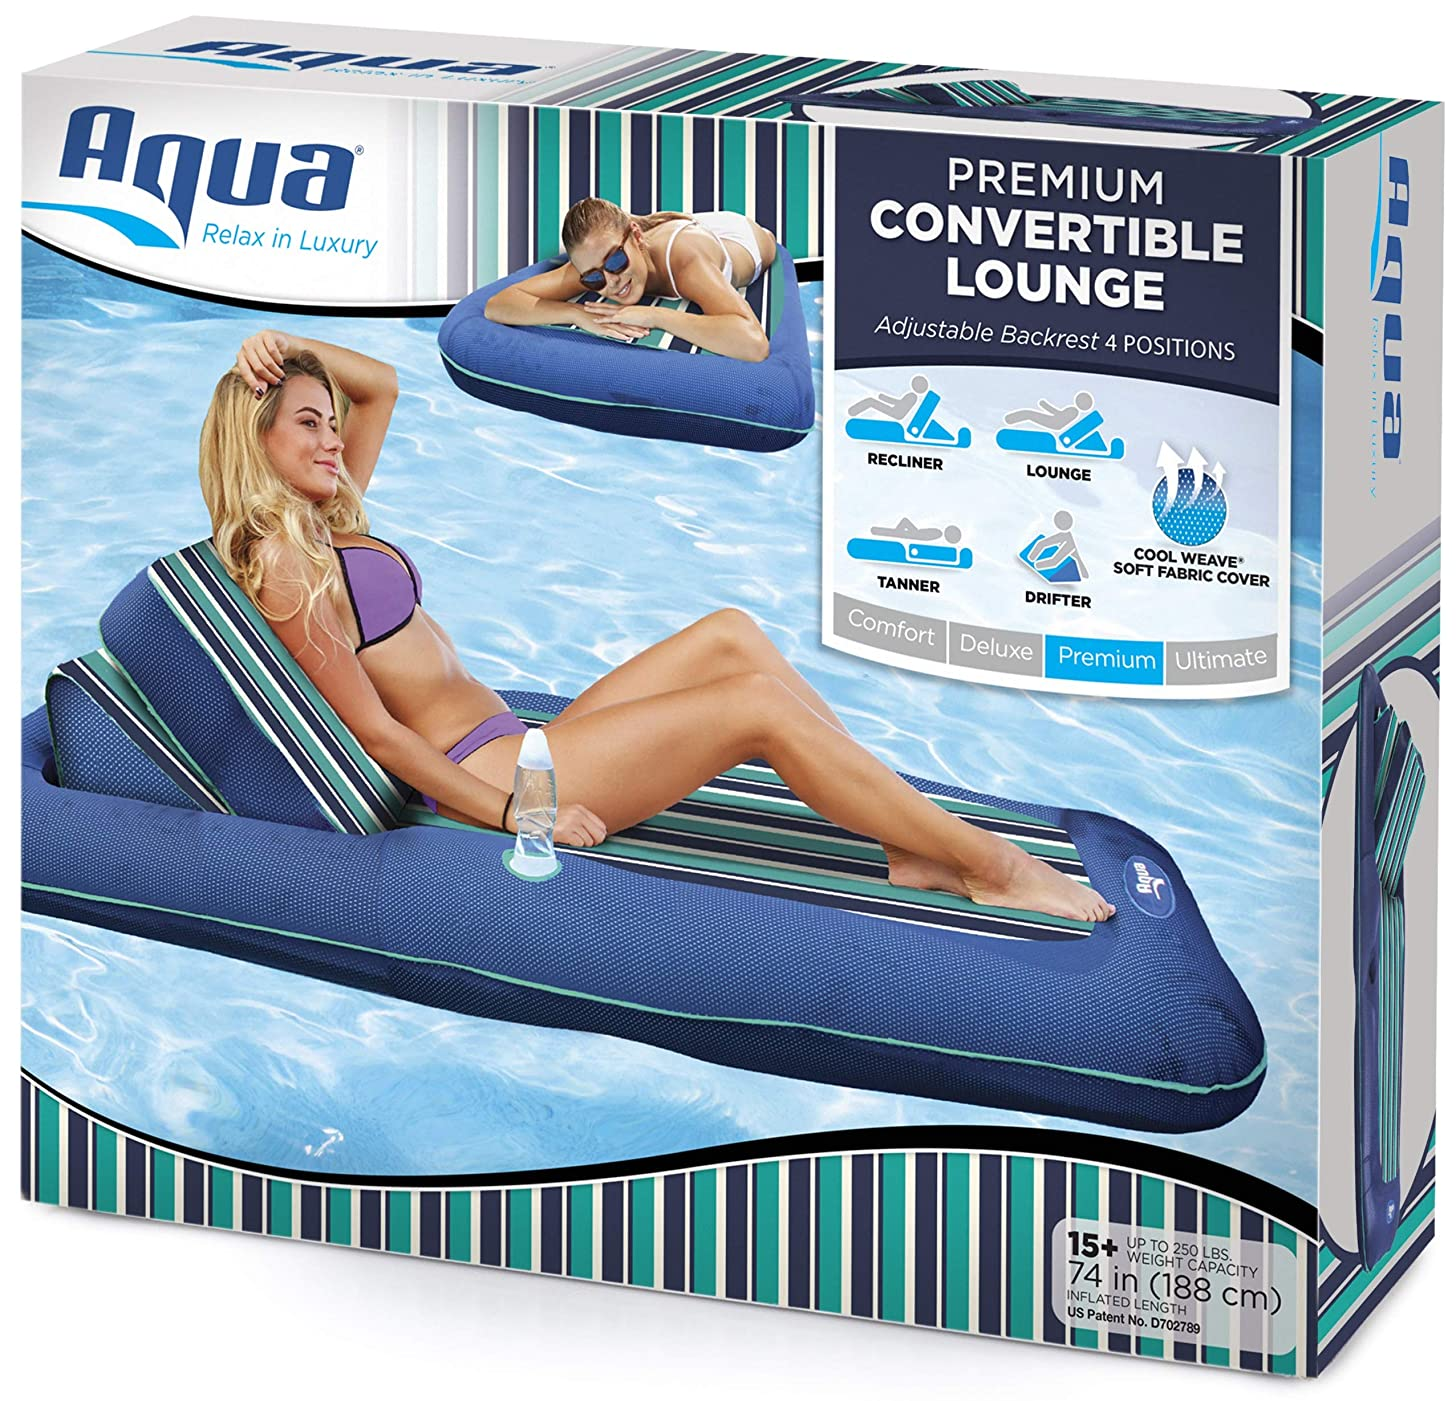 "Aqua Premium Convertible Pool Lounger, Heavy Duty, X-Large, Inflatable Pool Float, 74"" – 90"", Navy/Green/White Stripe"